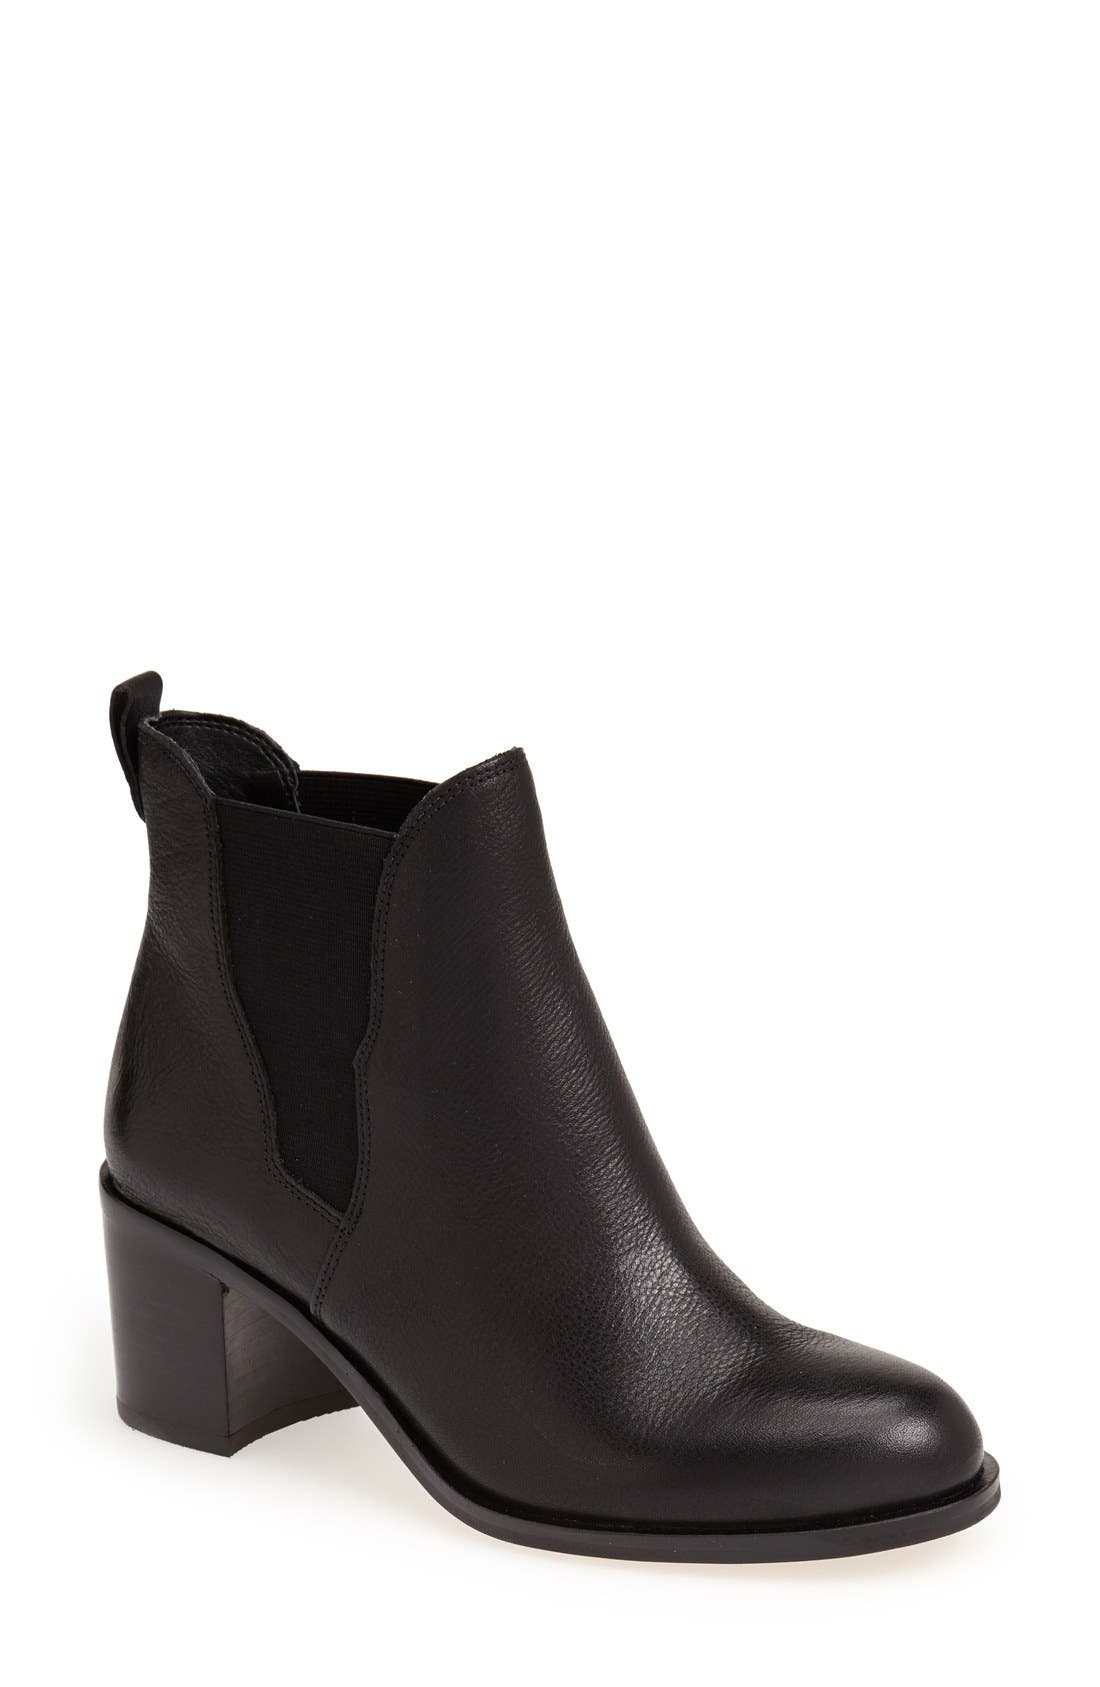 Alternate Image 1 Selected - Sam Edelman 'Justin' Leather Bootie (Women)